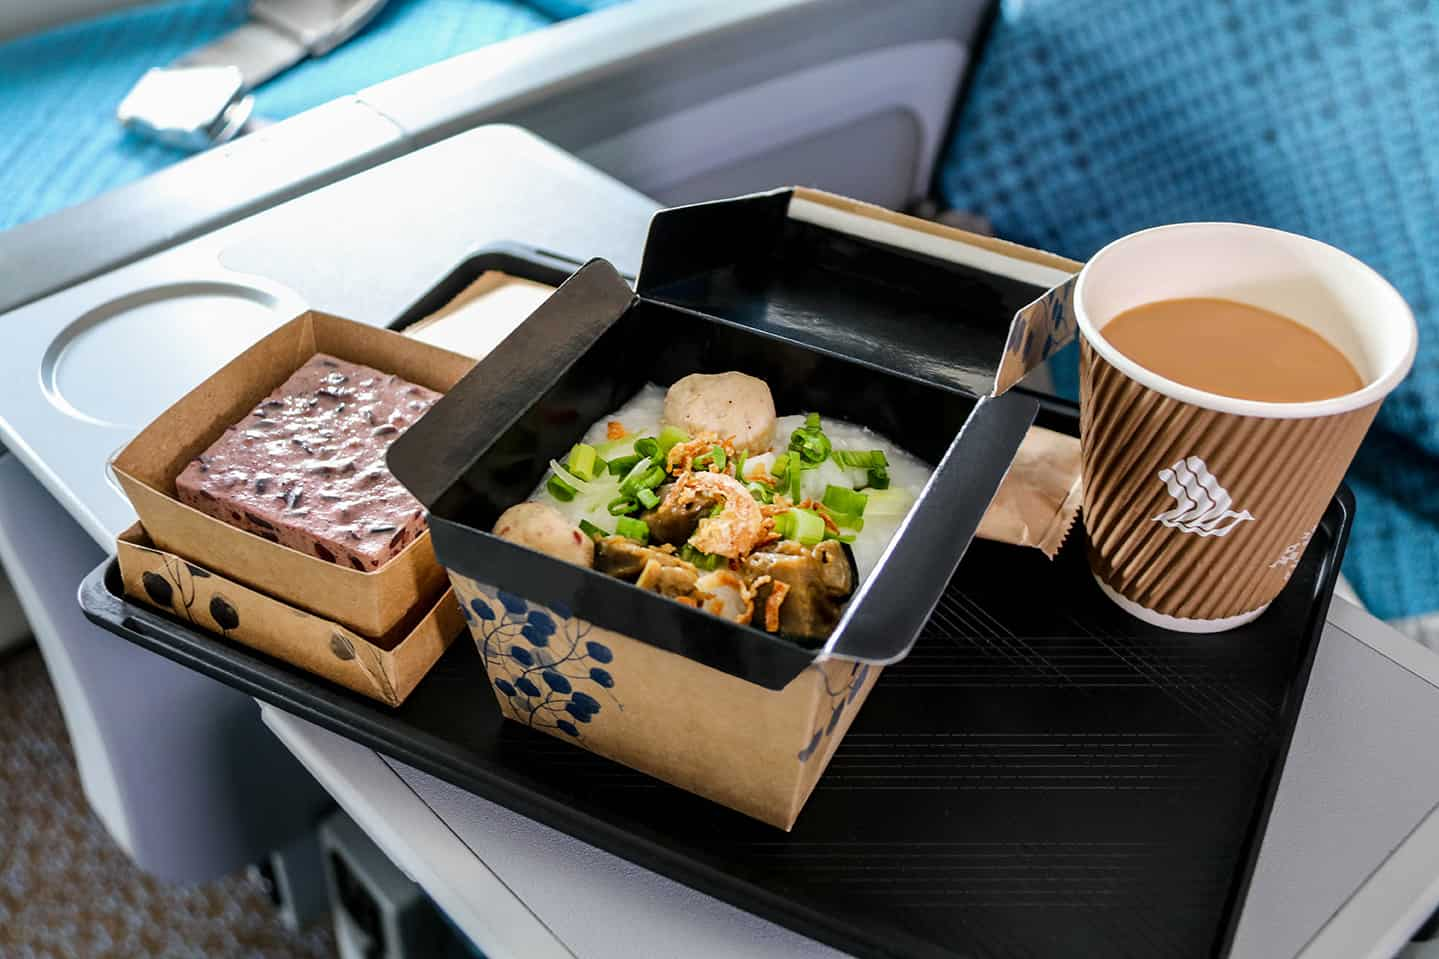 Singapore Airlines Meals